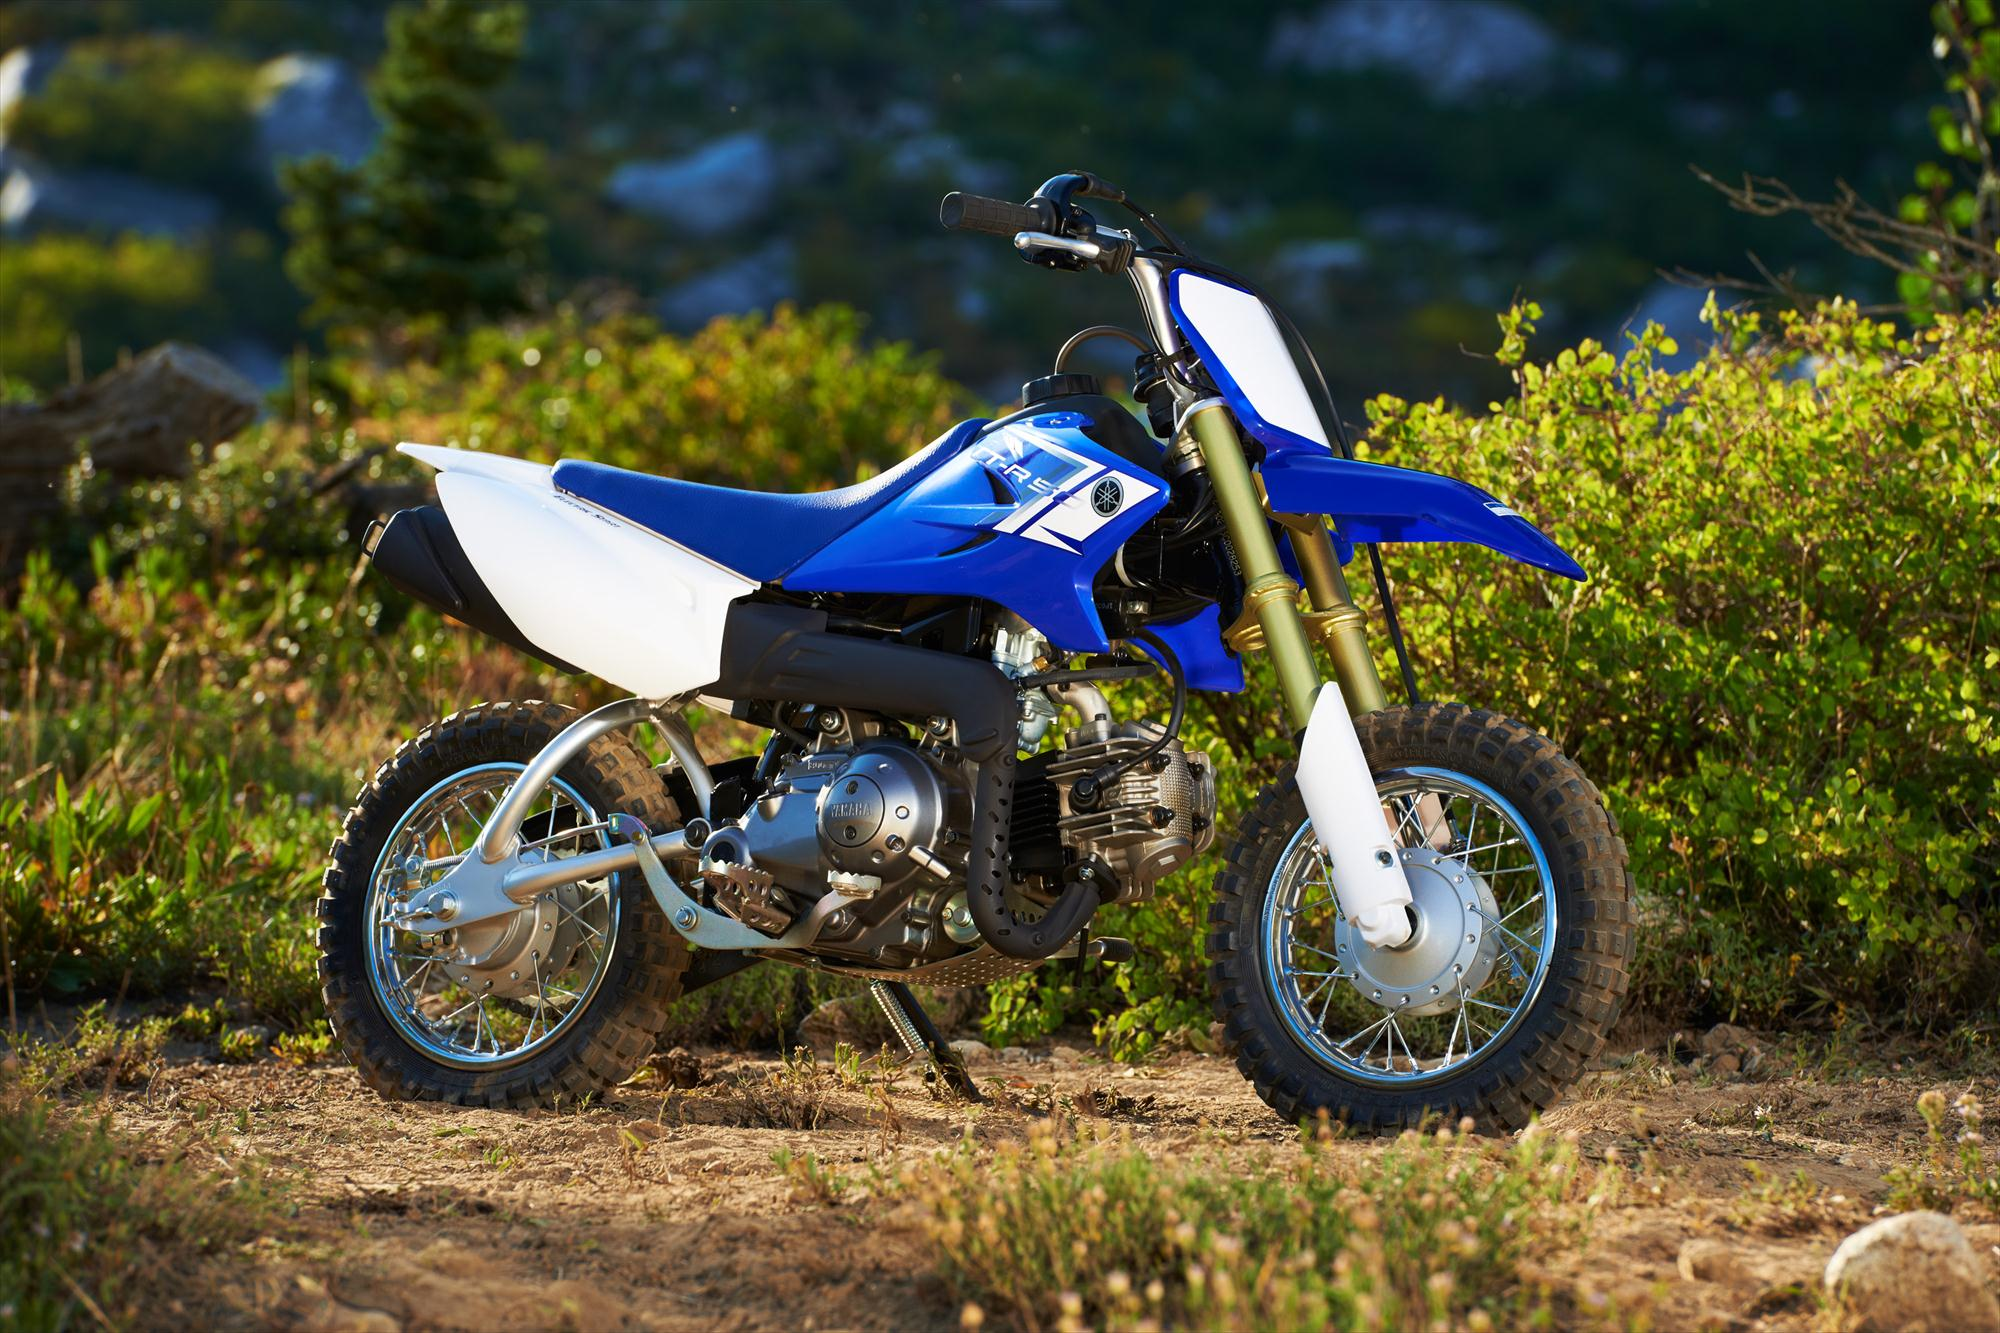 Motocross Bikes With Low Seat Height